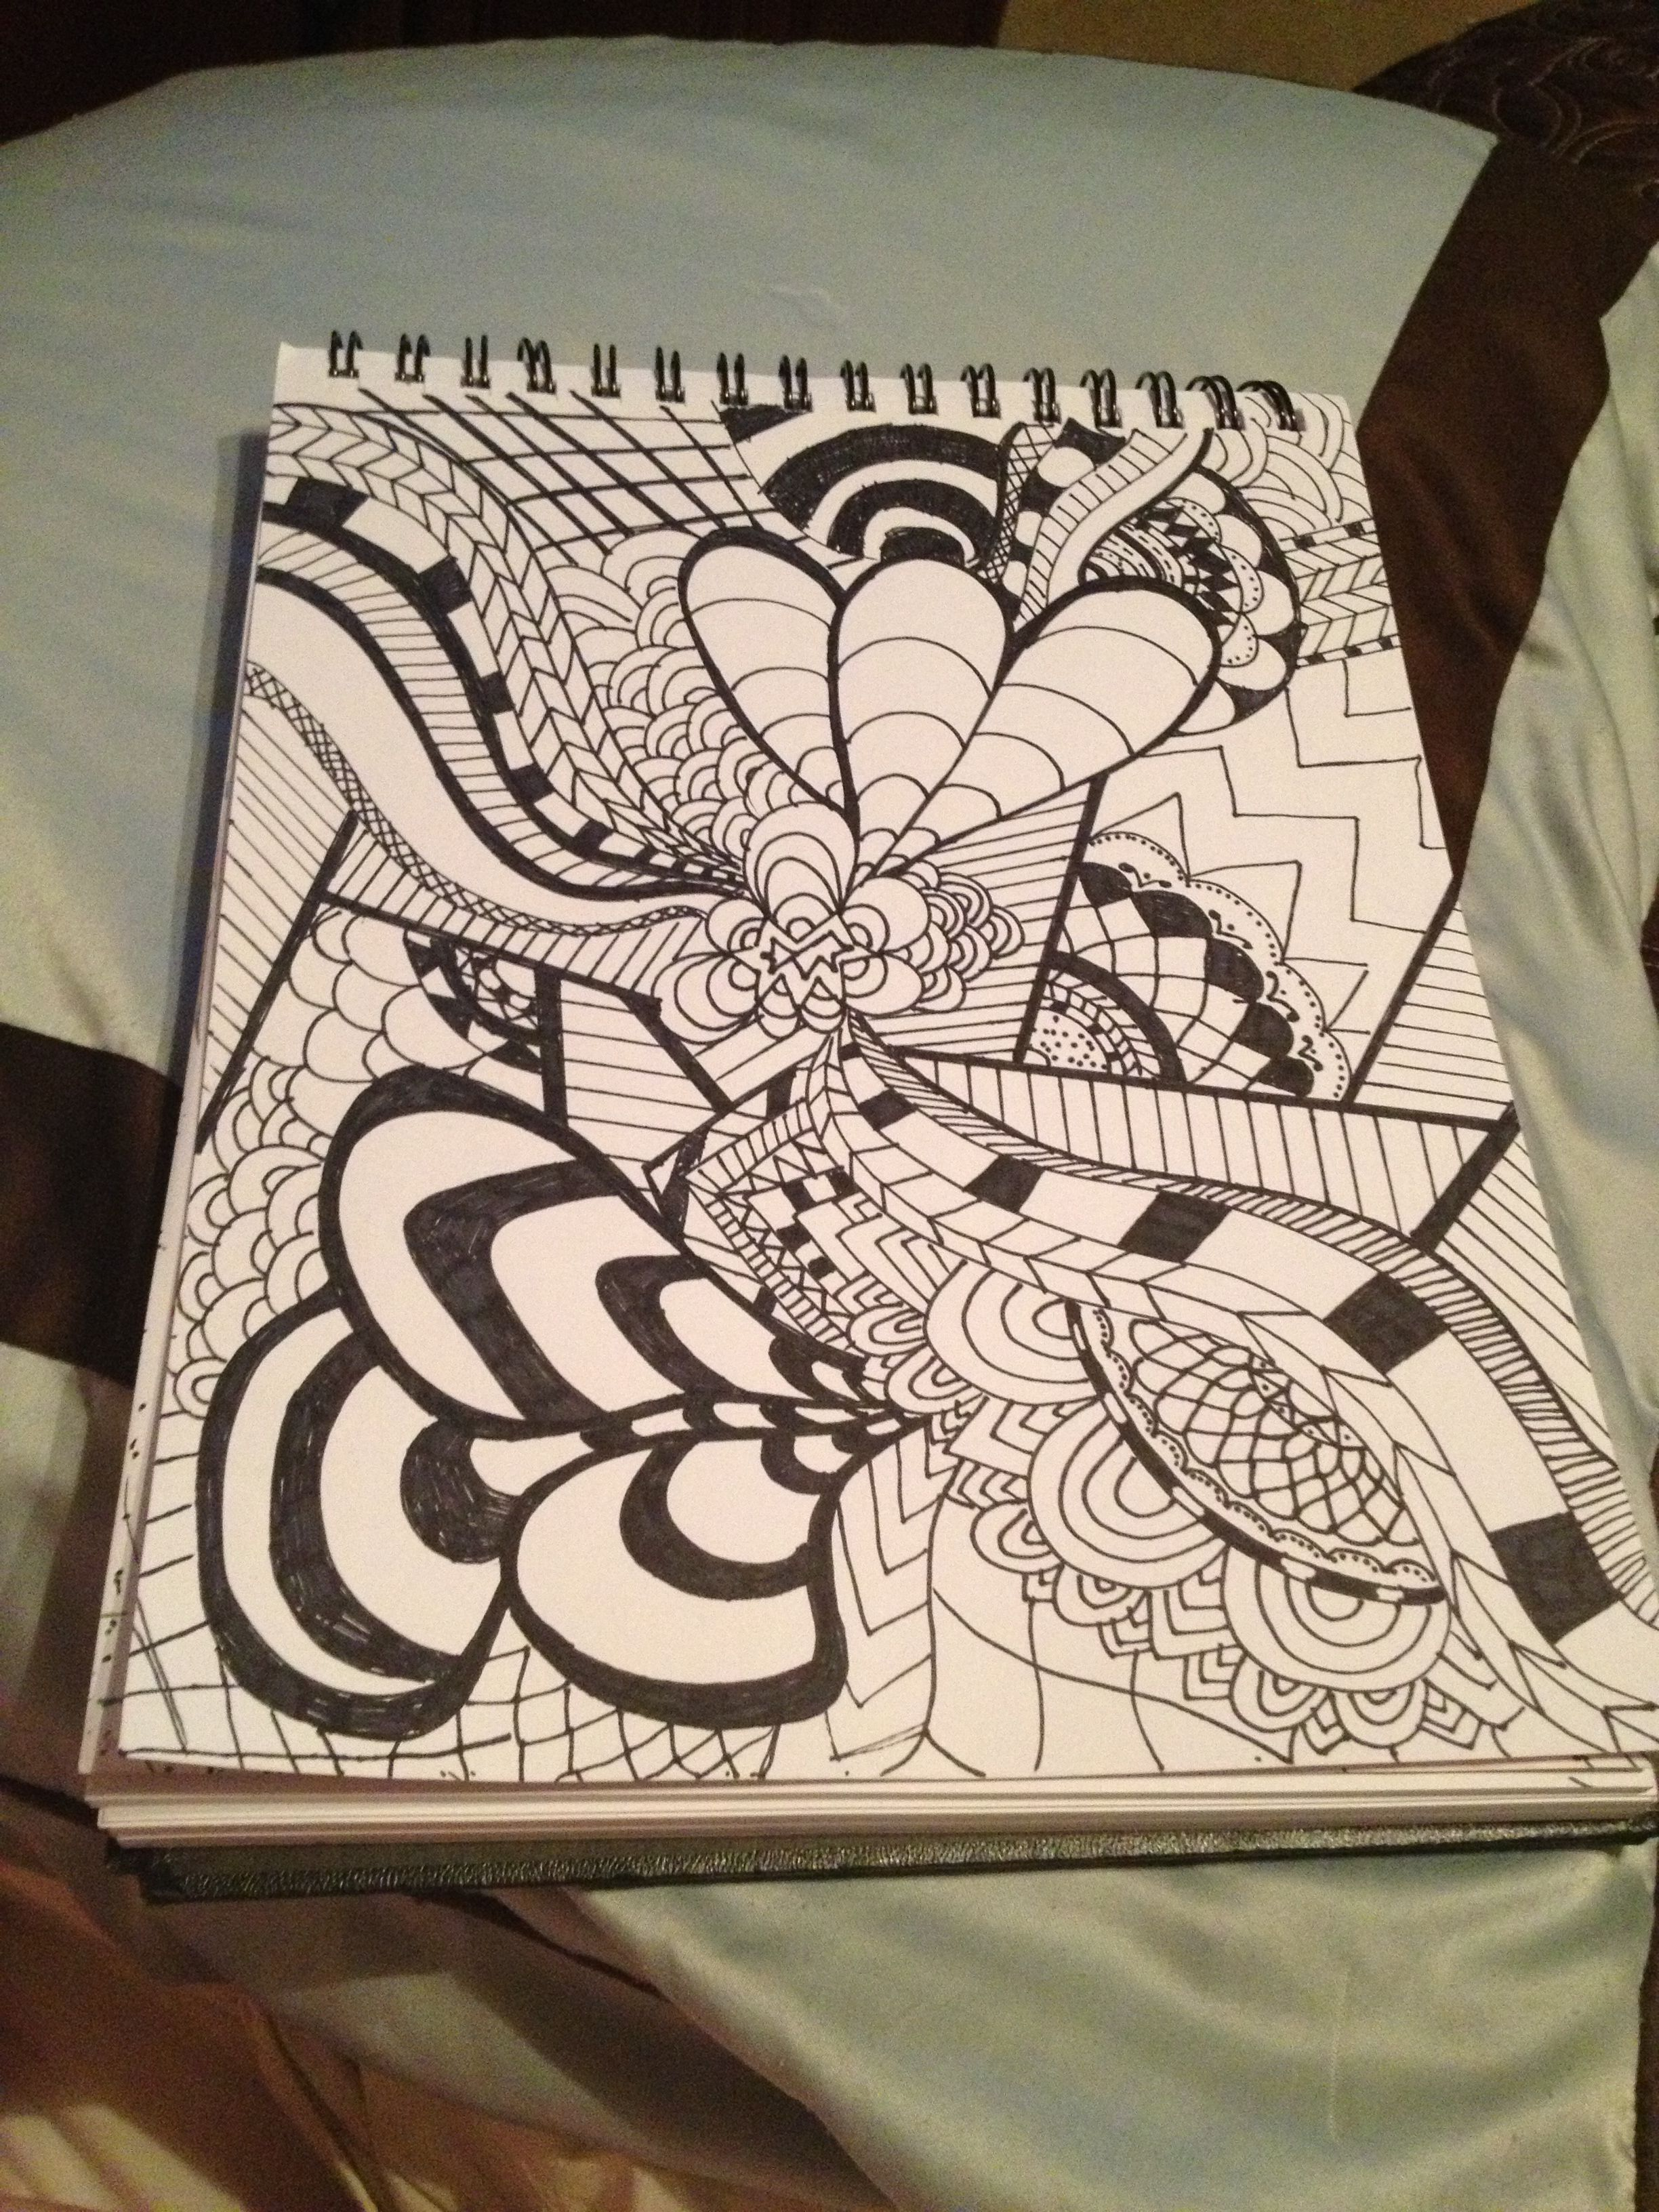 Trippy drawing Trippy drawings, Trippy designs, Trippy